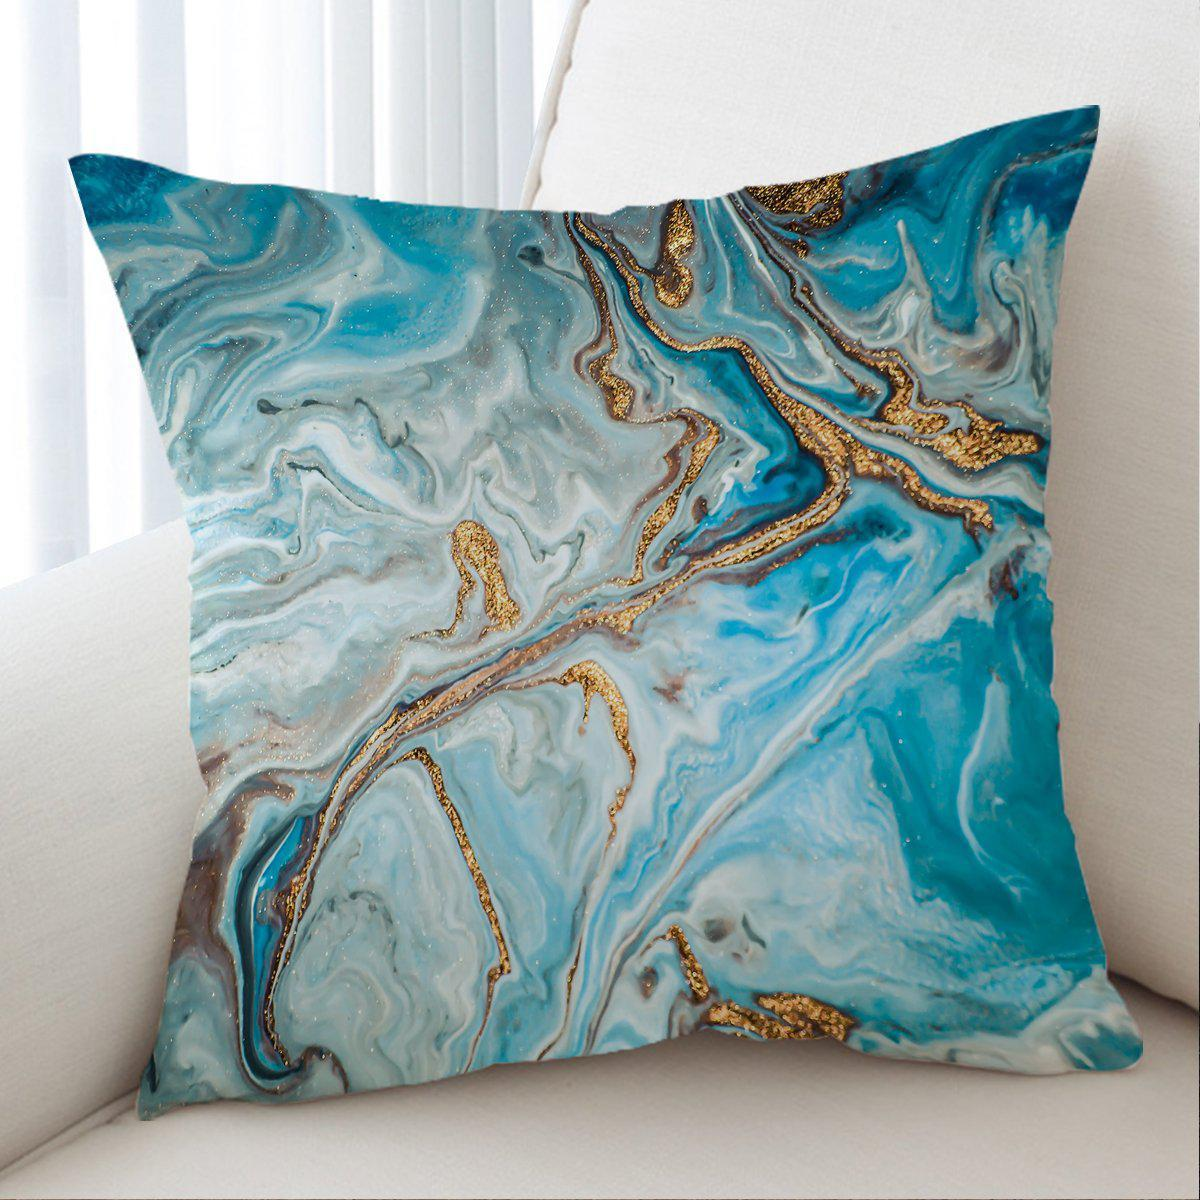 The Baths Pillow Cover Set-Coastal Passion